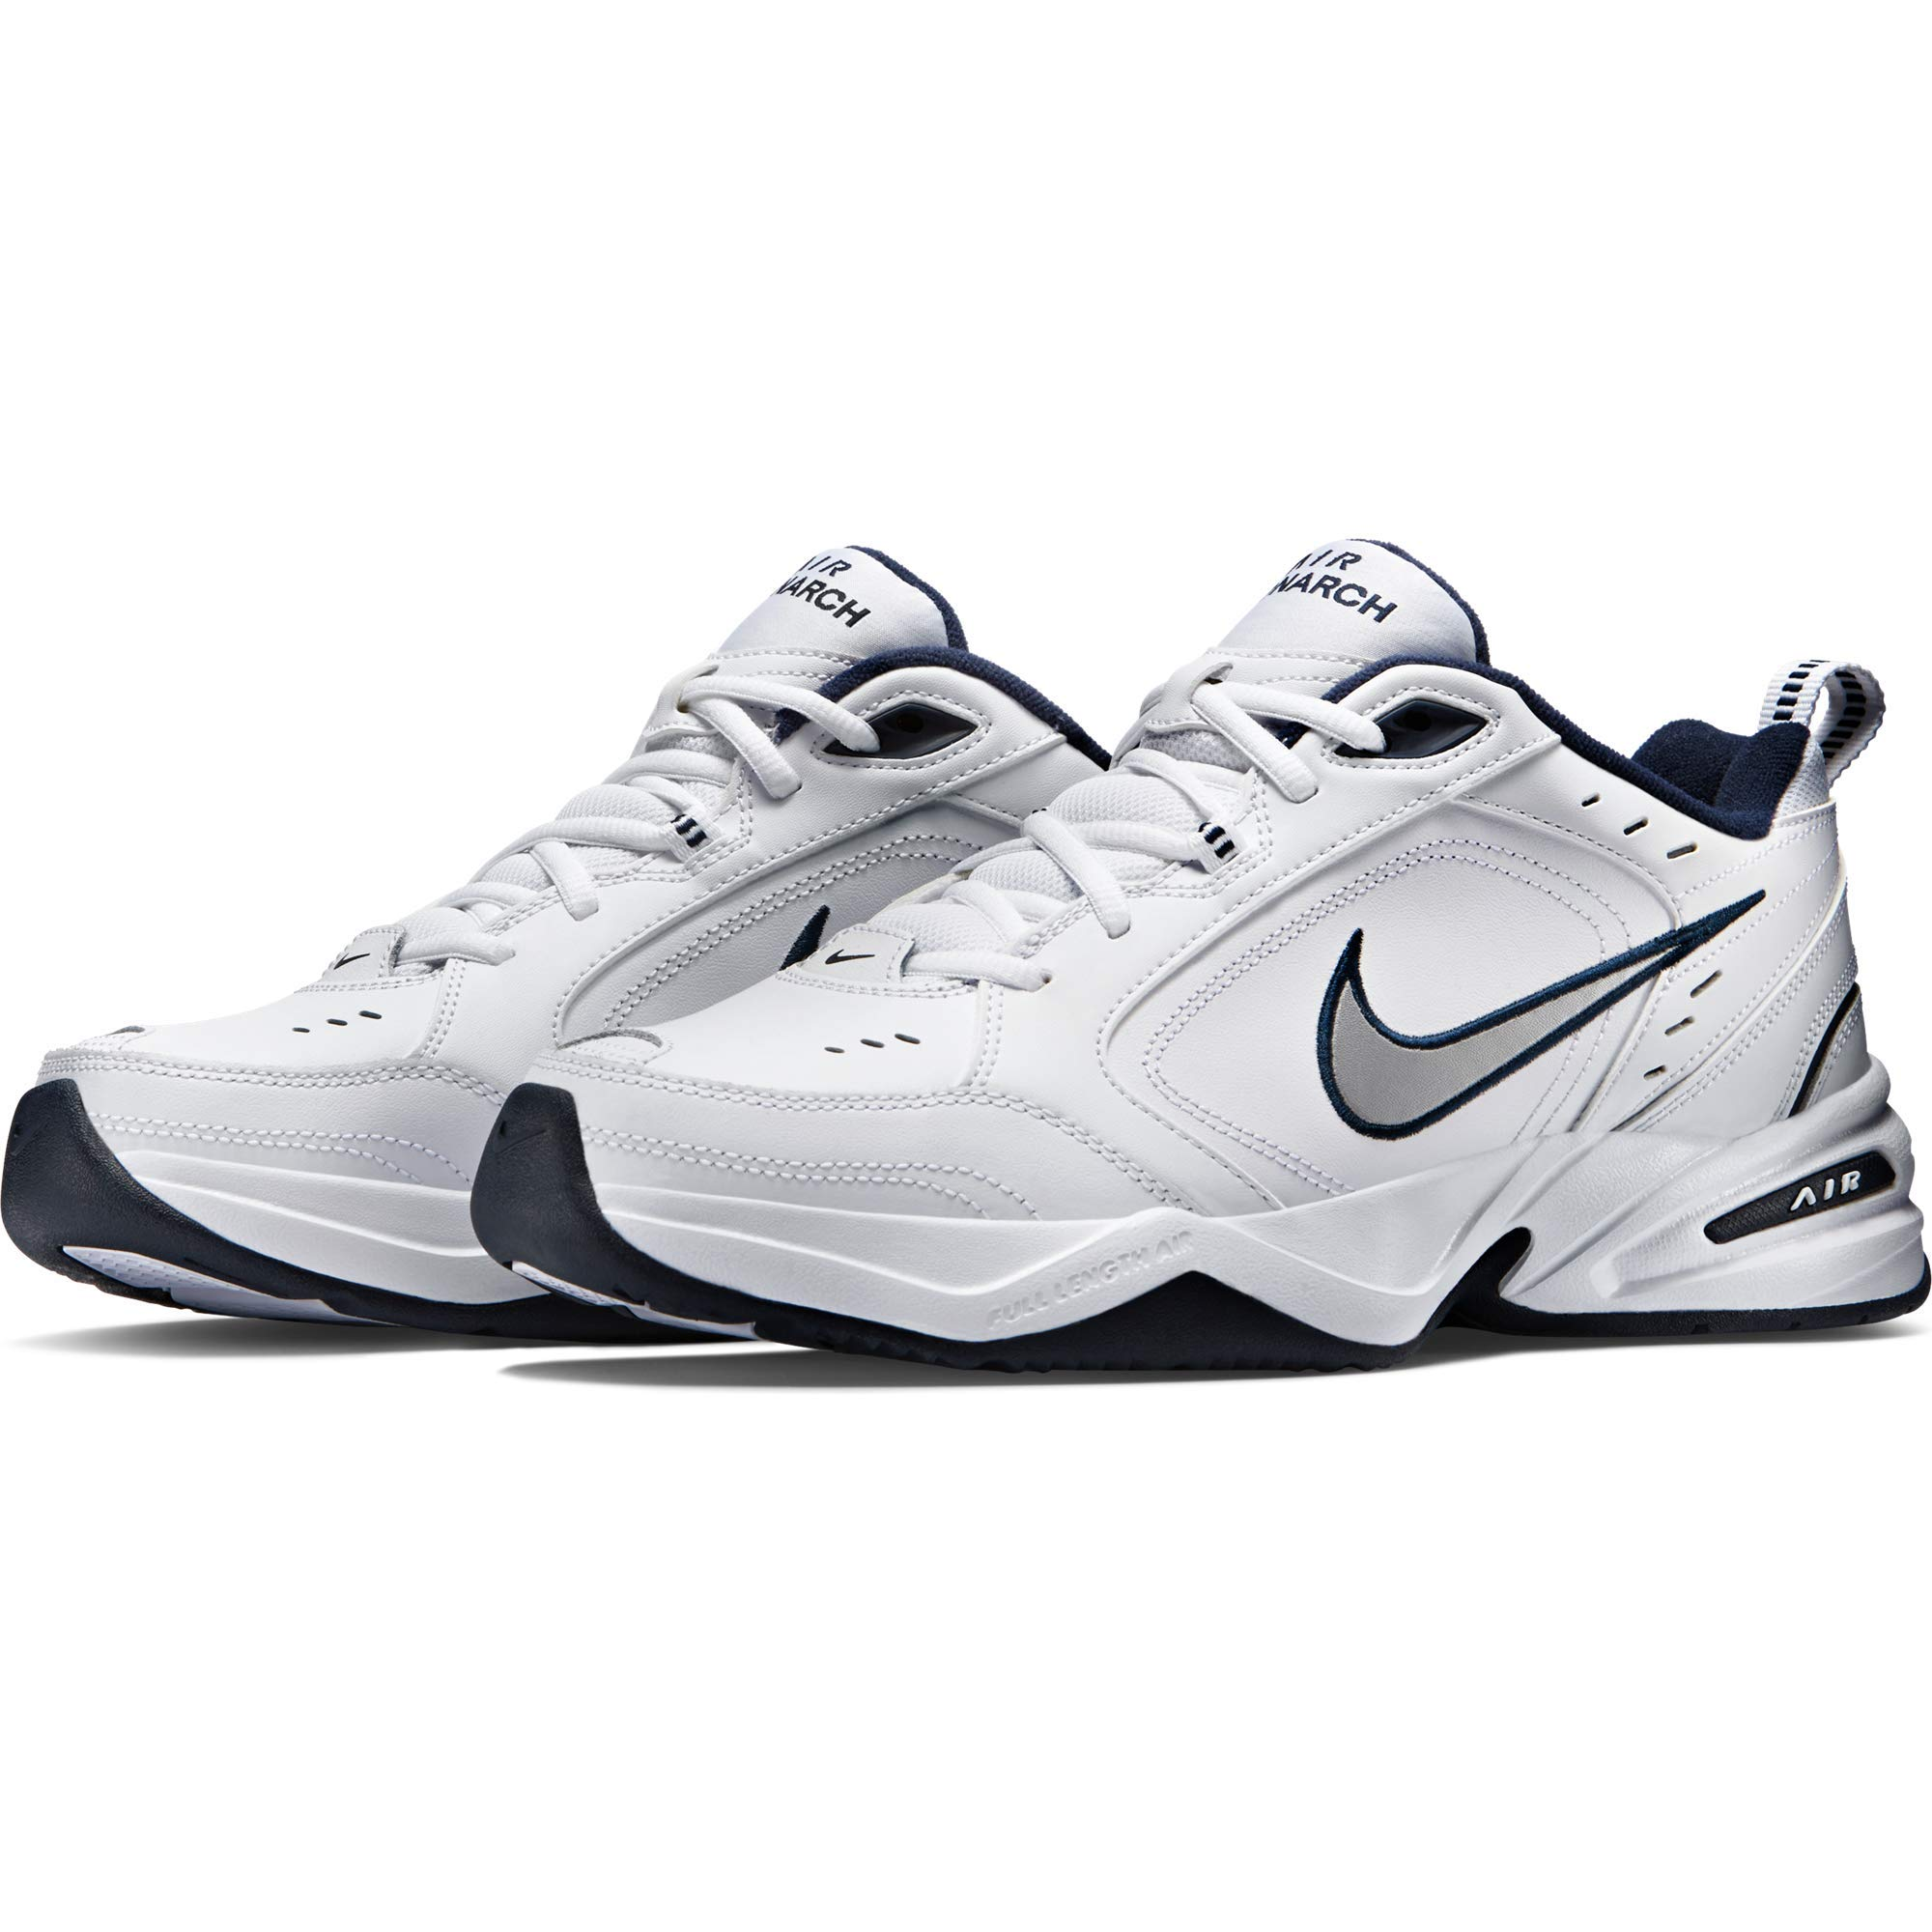 Nike Men's NIKE AIR MONARCH IV (4E) RUNNING SHOES -8.5;   White / Metallic Silver-Midnight Navy by Nike